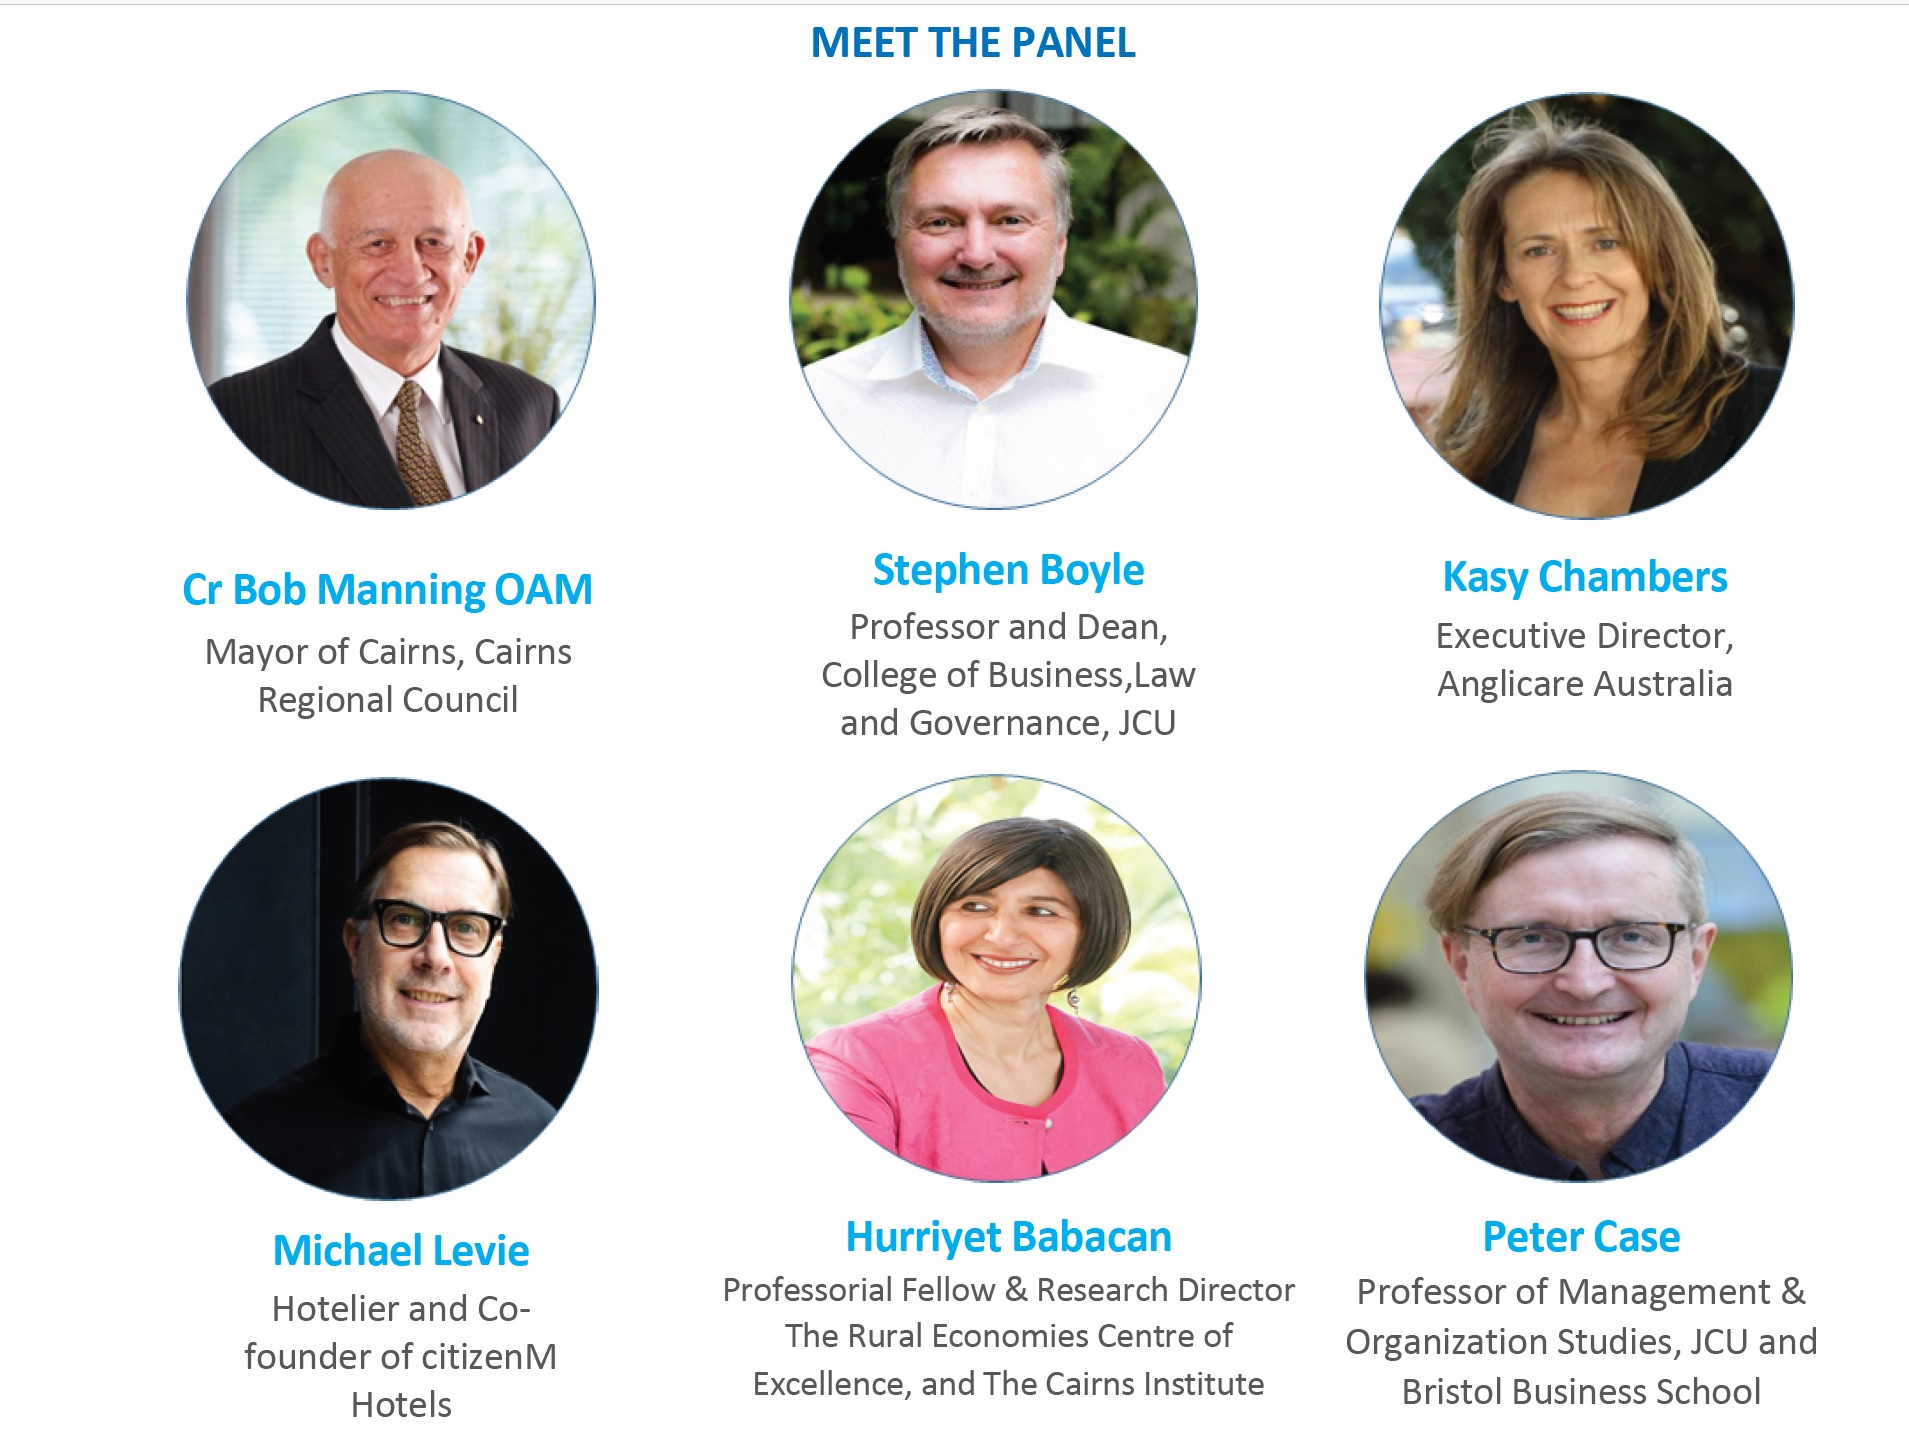 Panel Speakers: CR Bob Manning OAM, Stephen Boyle, Kasy Cambers, Michael levie, Hurriyet Babacan, Peter Case